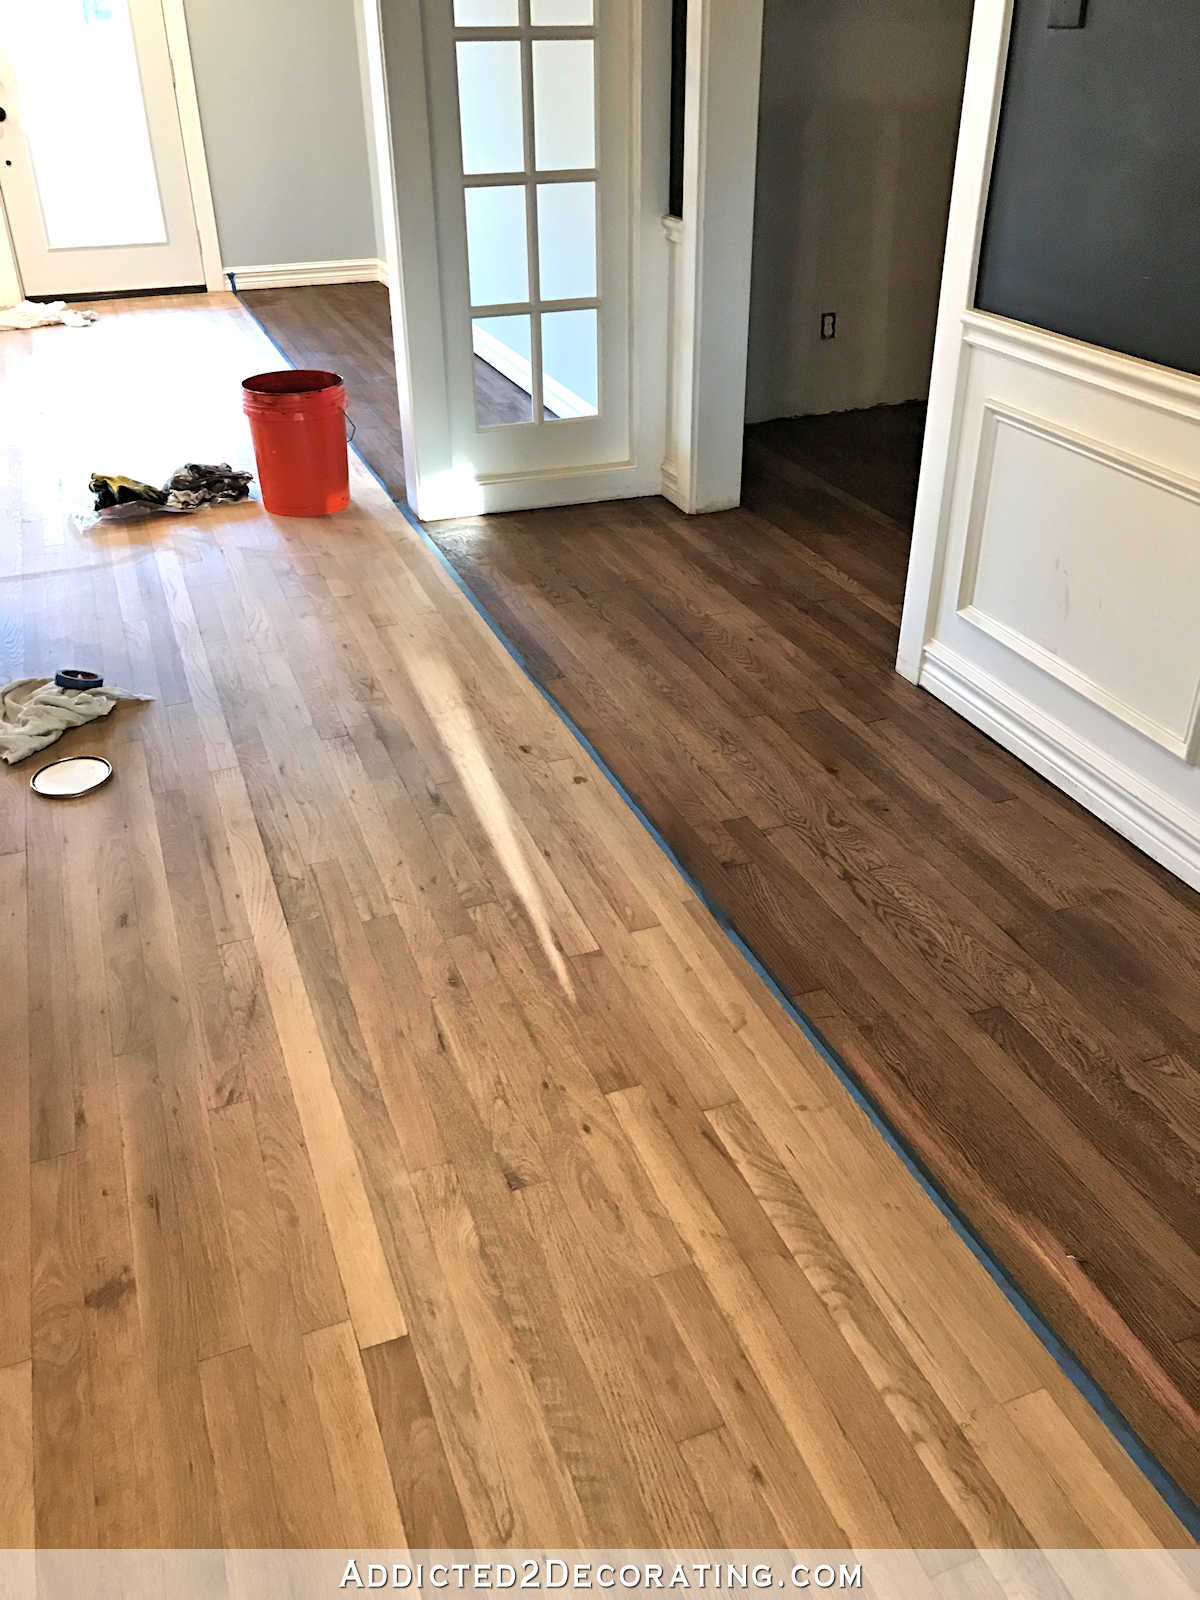 popular hardwood floor colors 2017 of adventures in staining my red oak hardwood floors products process inside staining red oak hardwood floors 6 stain on partial floor in entryway and music